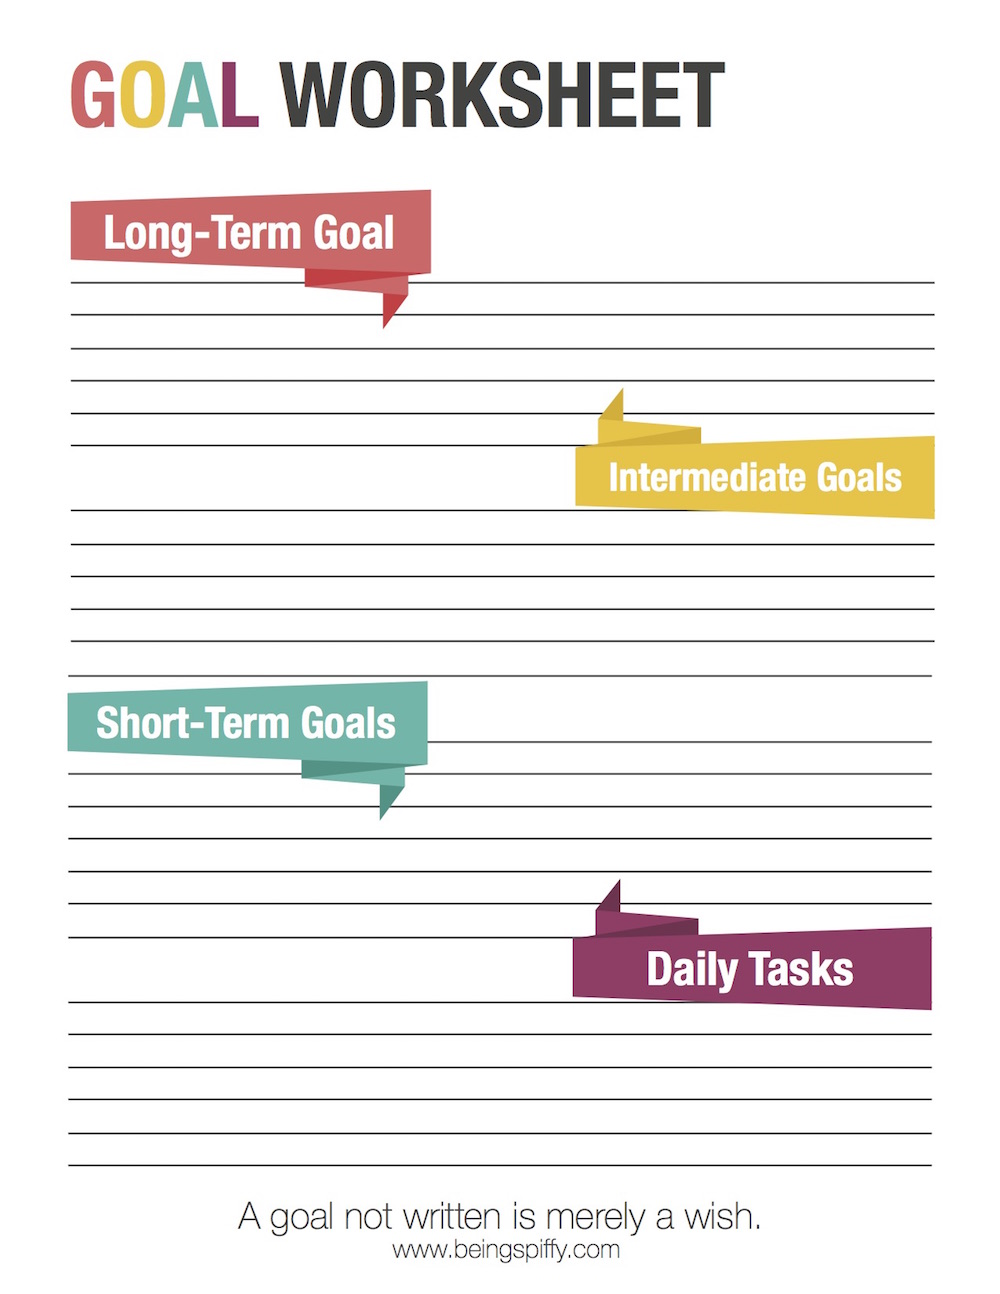 Worksheets Short And Long Term Goals Worksheet how to set goals and achieve them being spiffy just click on the image below download option will open in a new window print as many you need organize each of your long term g